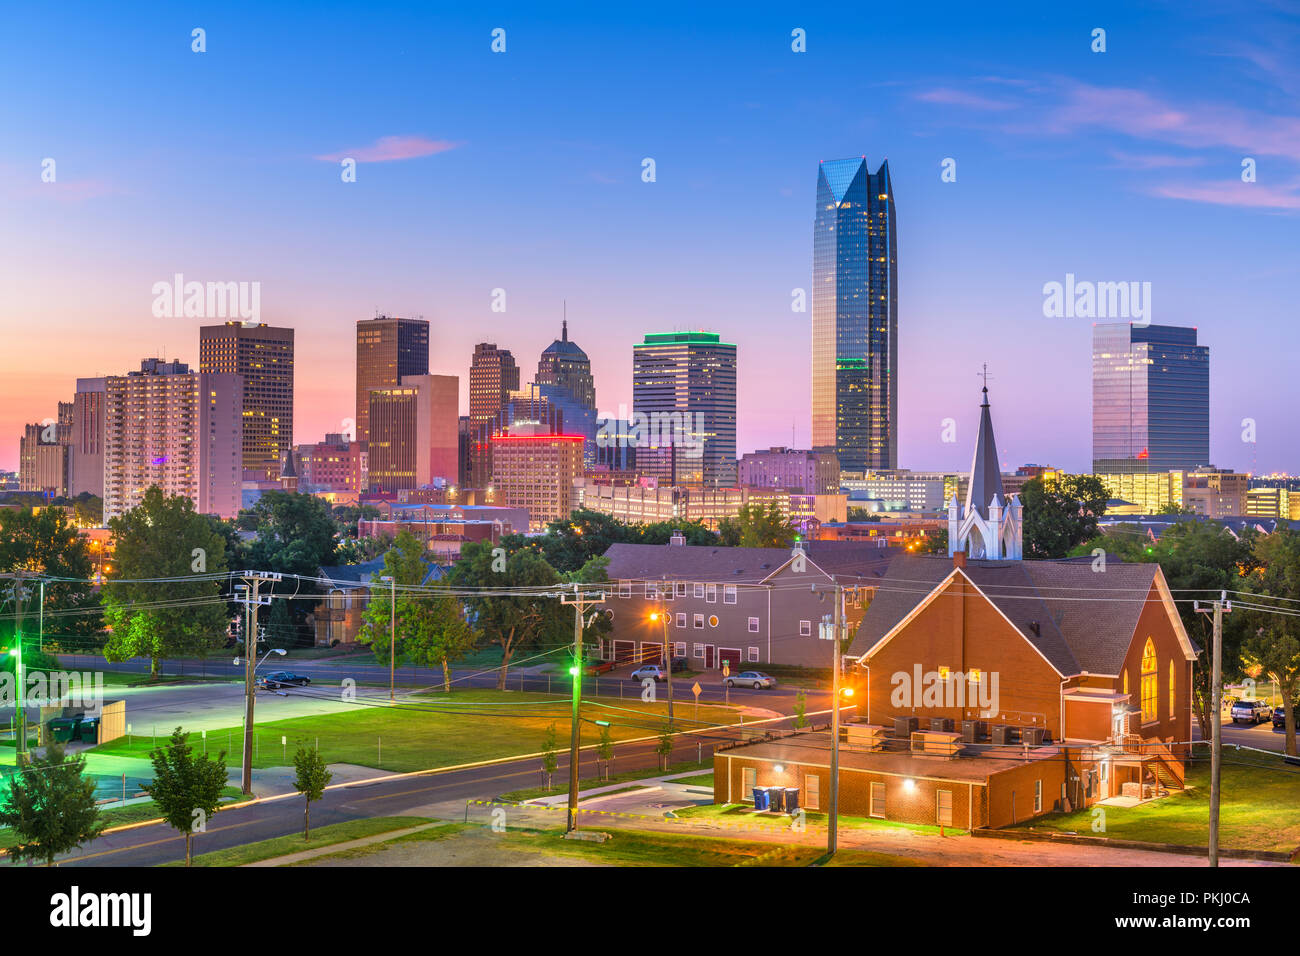 Oklahoma City, Oklahoma, USA Centre-ville au crépuscule. Photo Stock